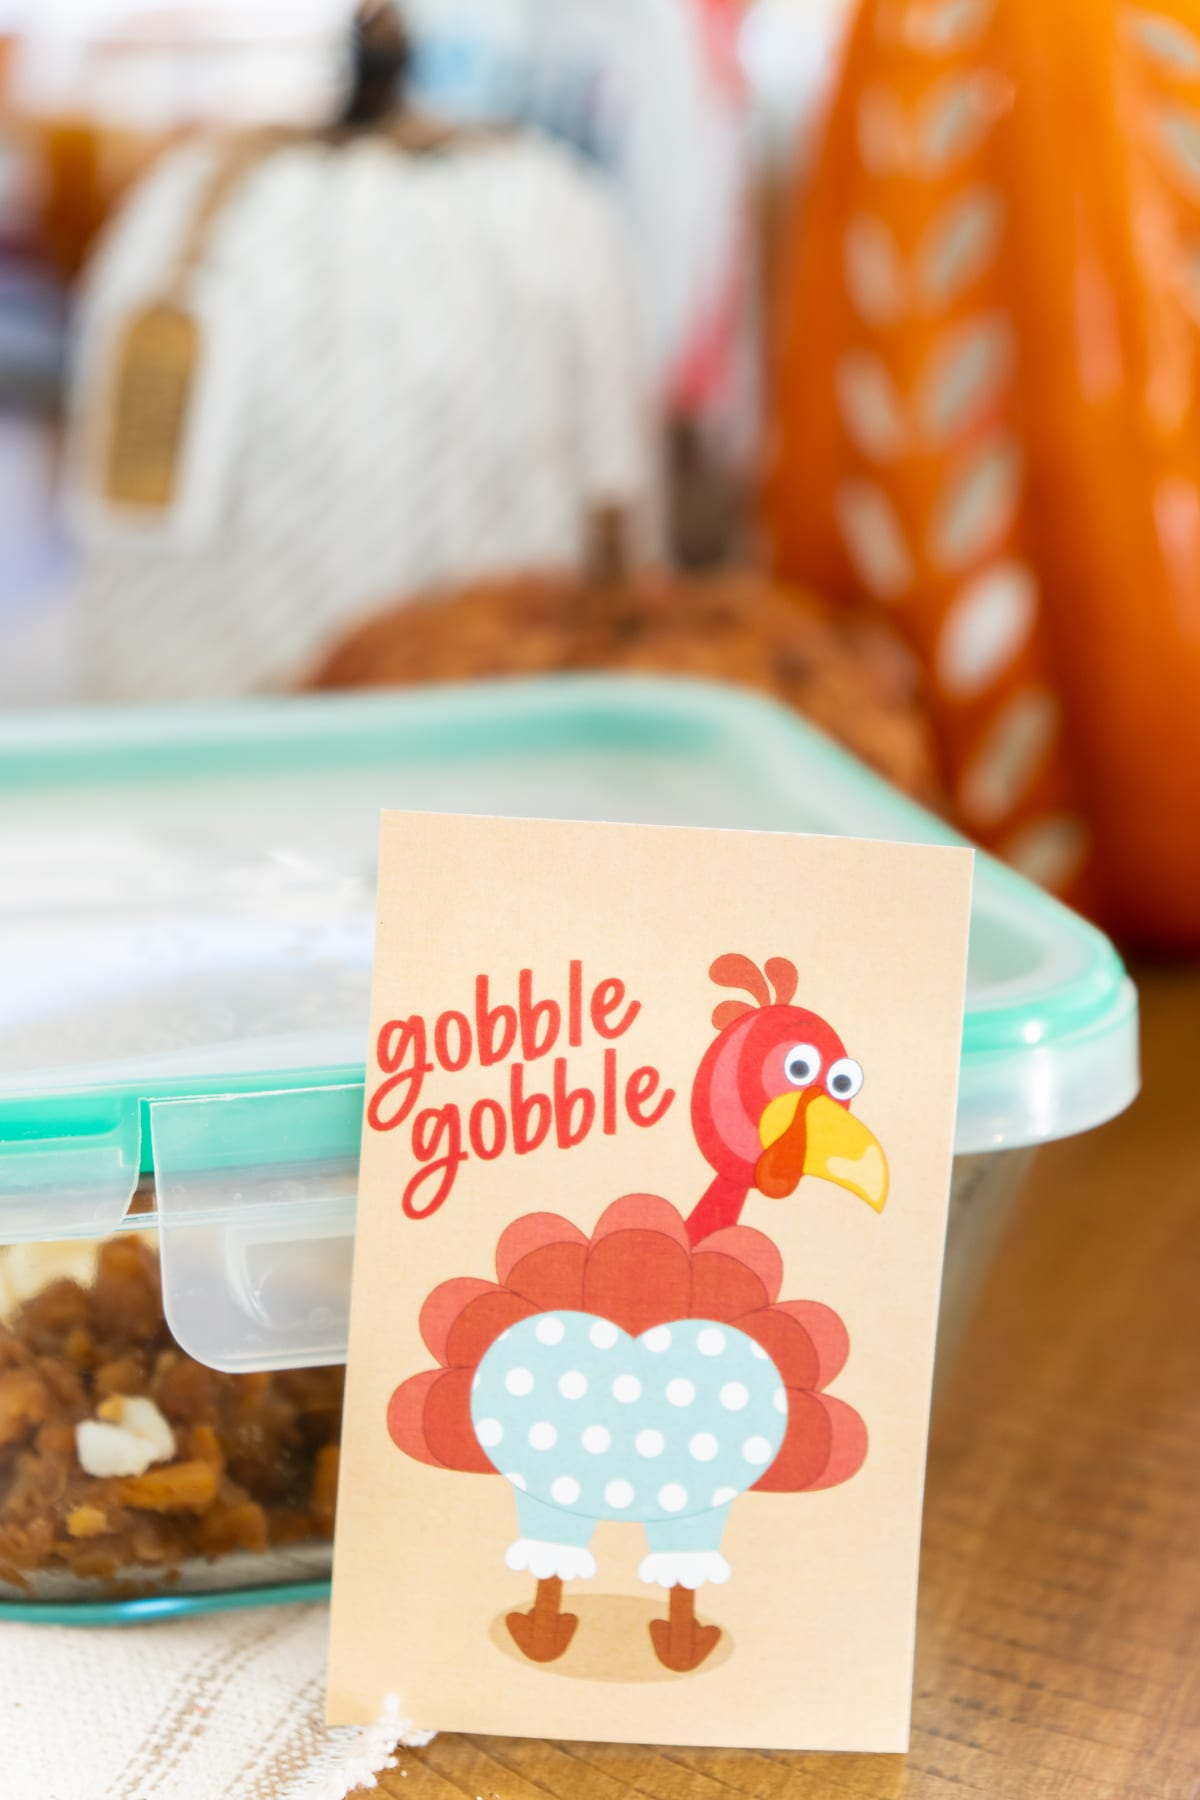 Gobble gobble gift tag with a plastic food container